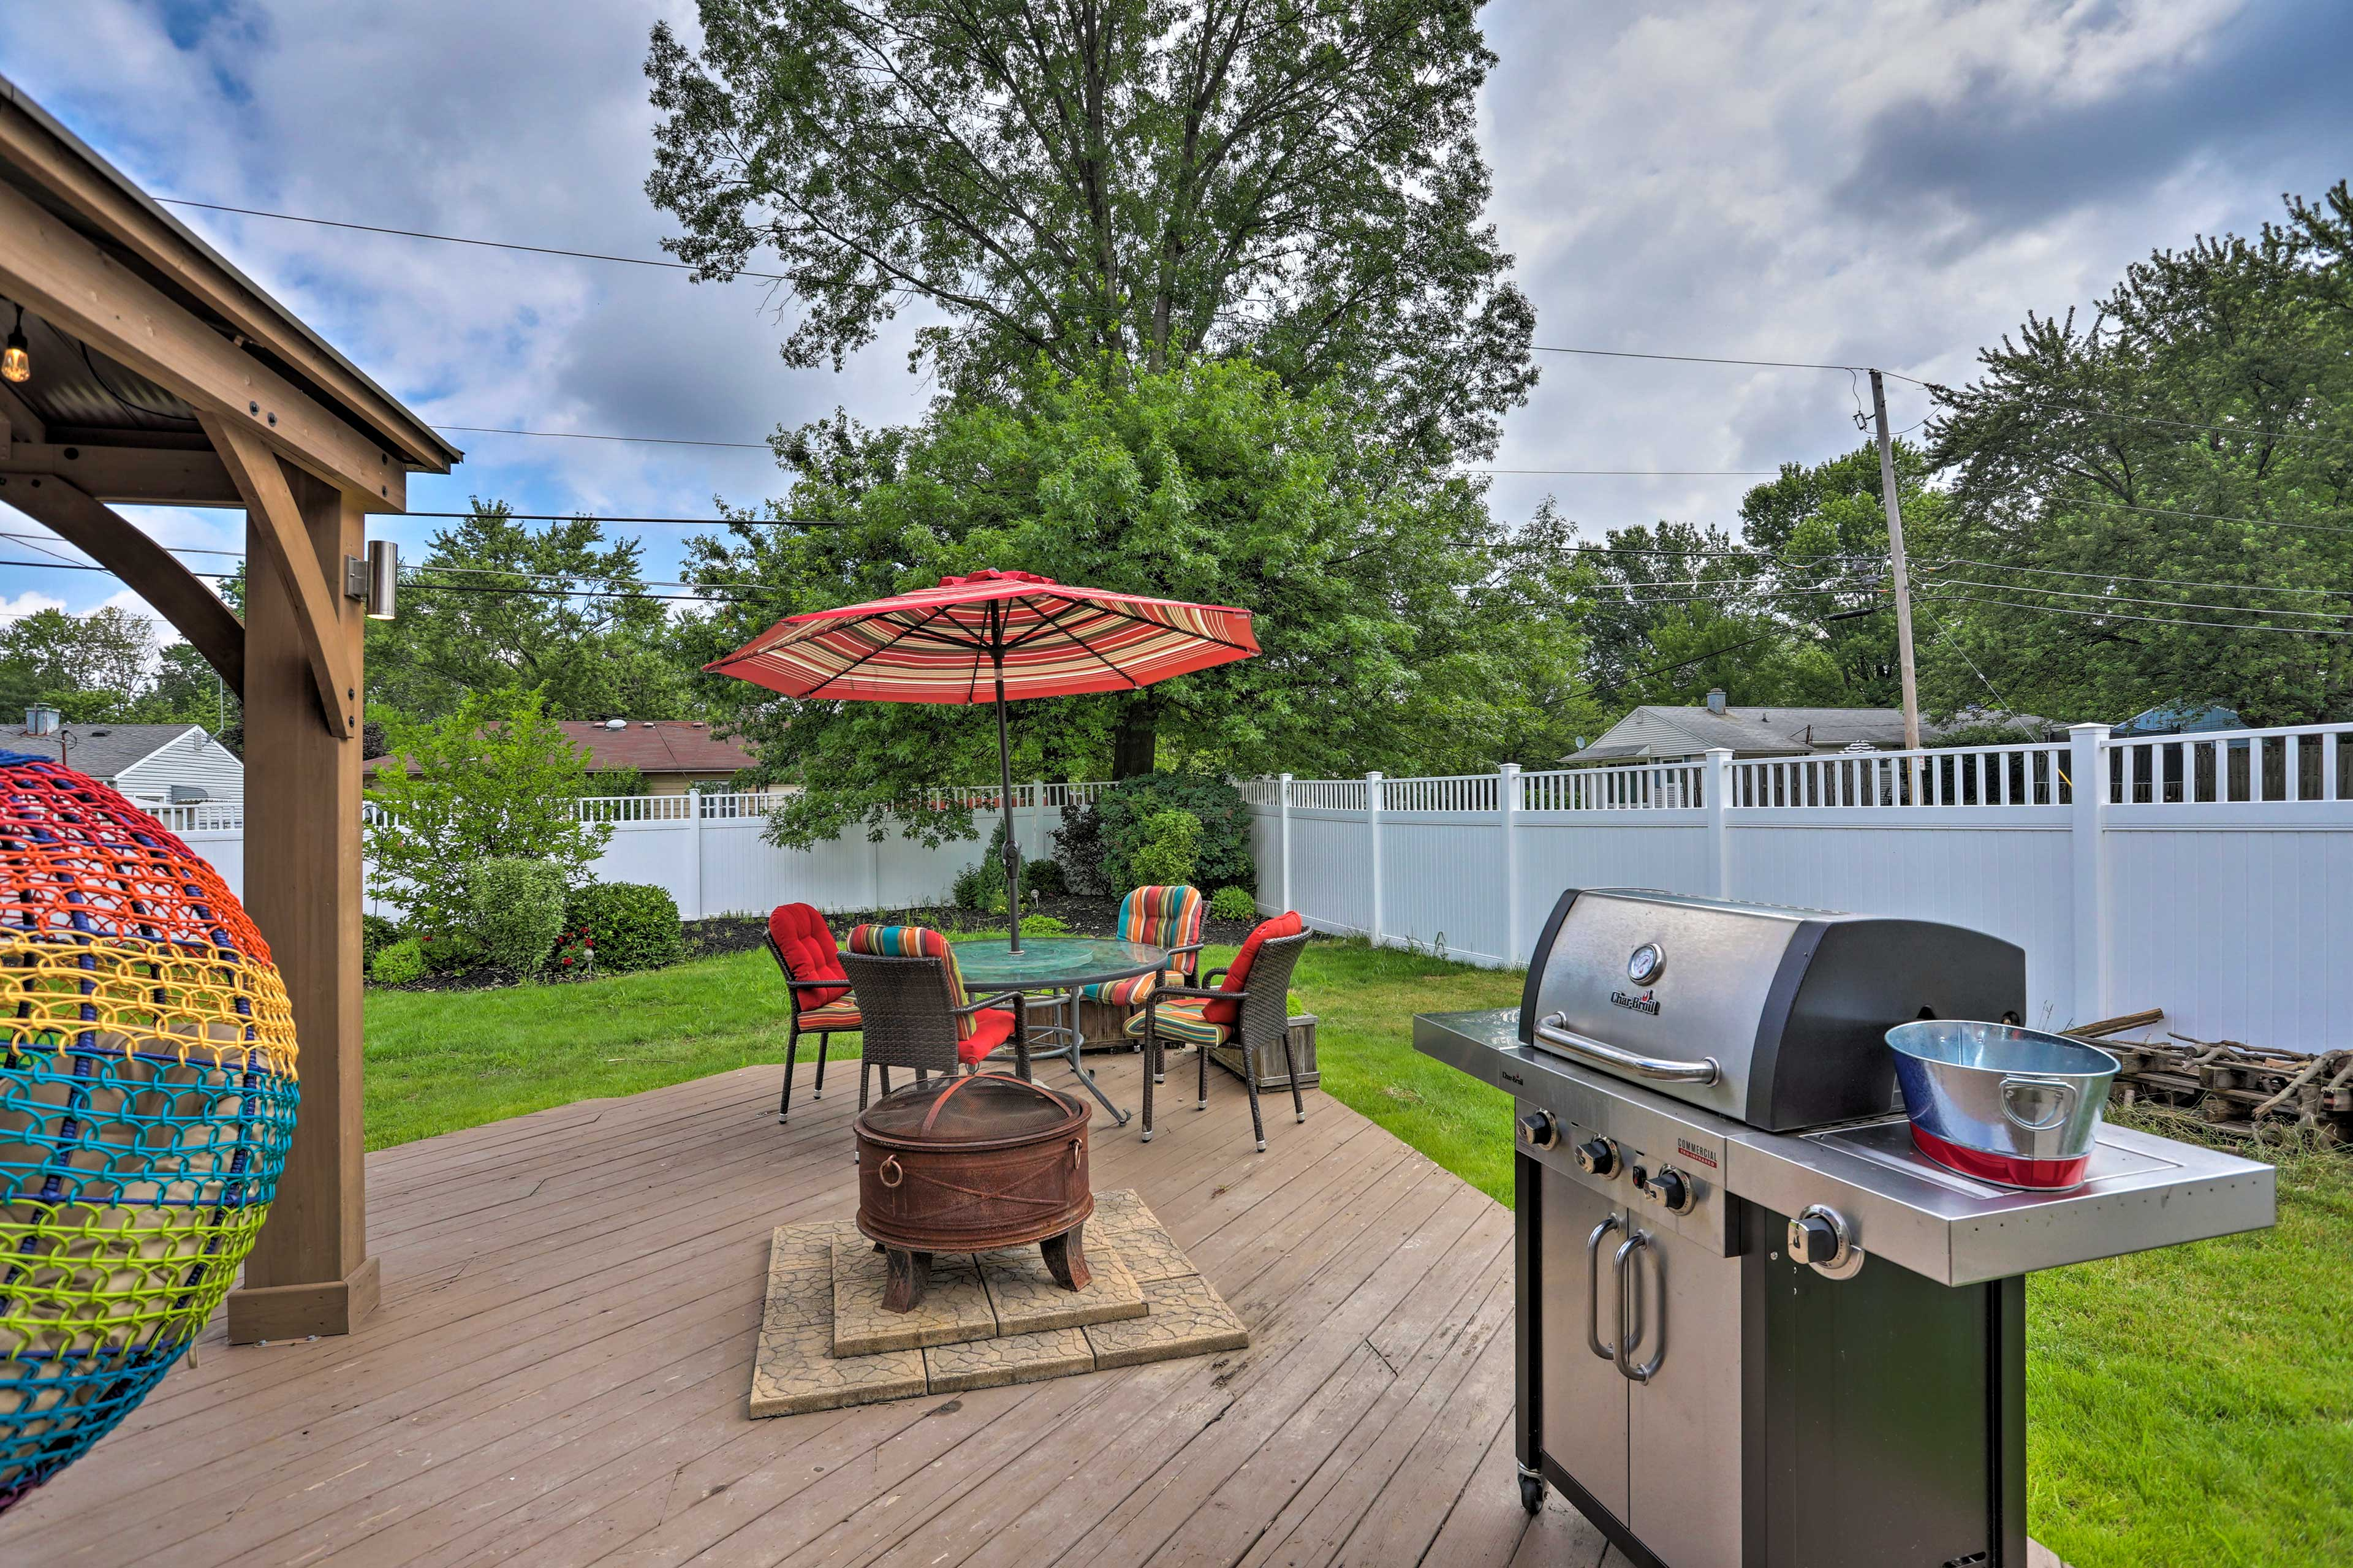 Enjoy the gas grill and fire pit for outdoor entertainment!